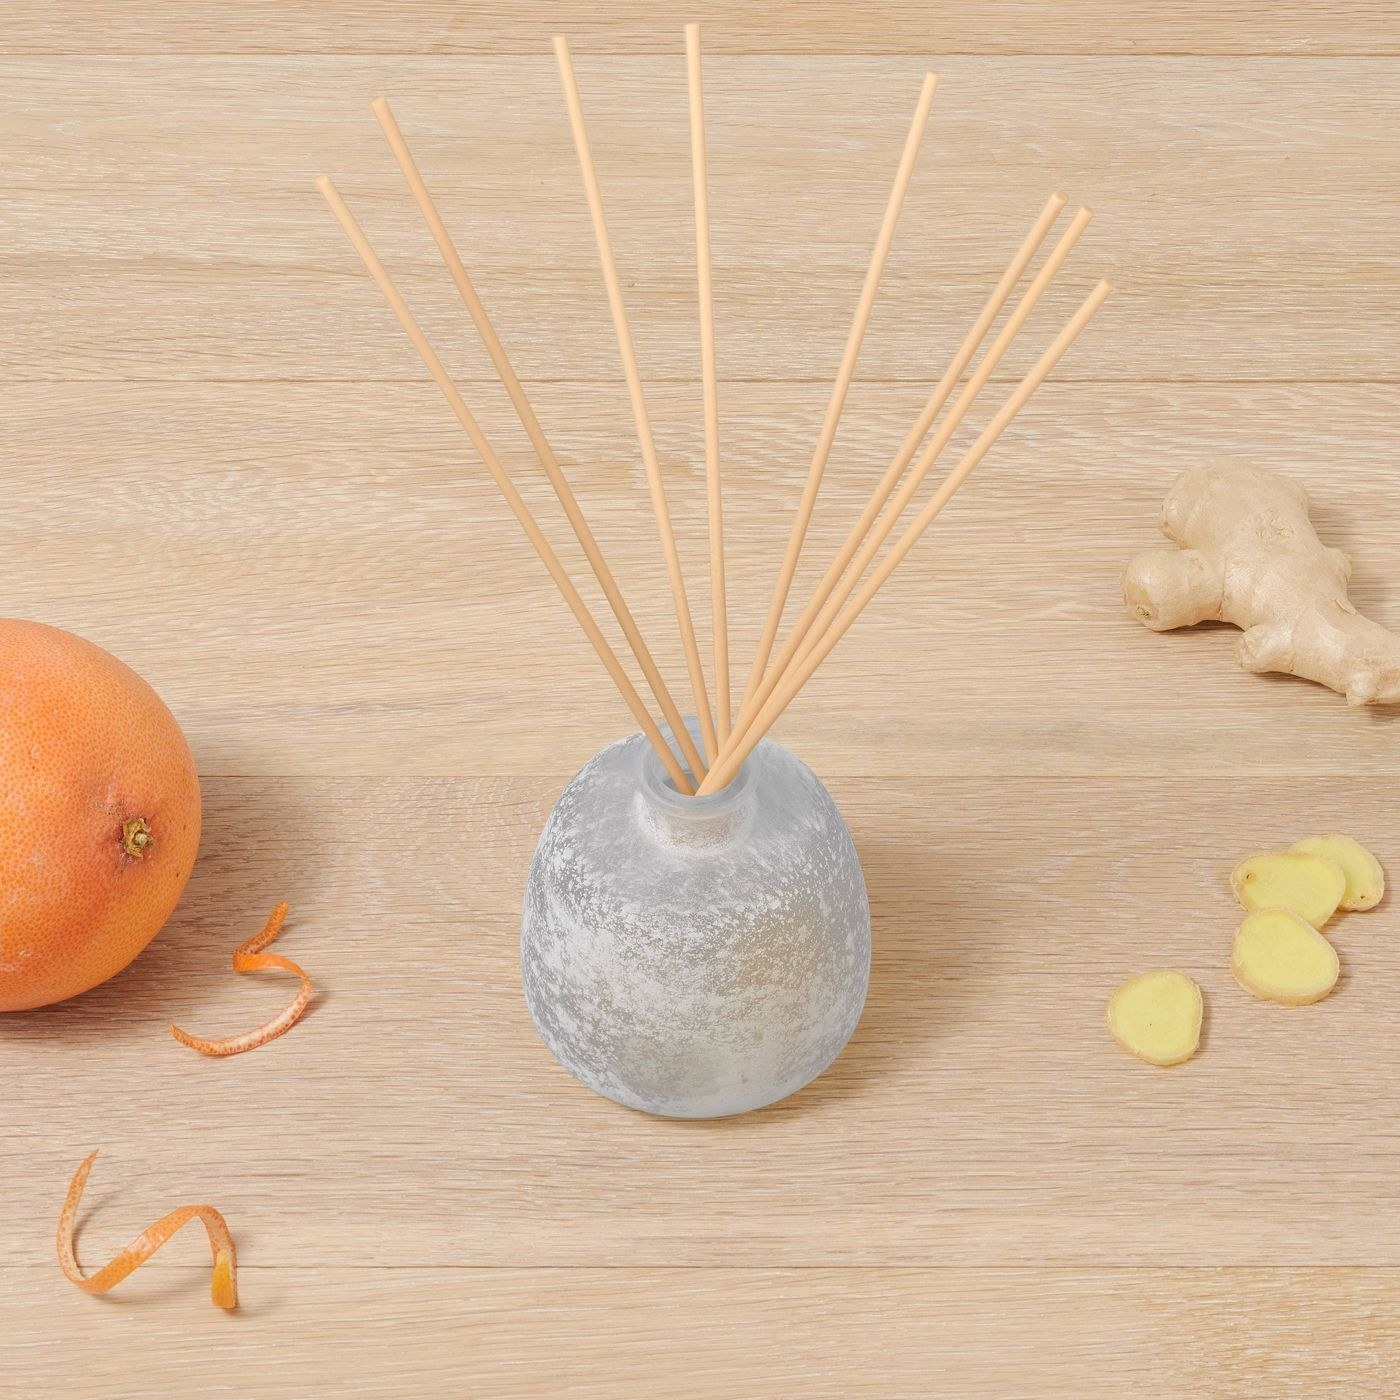 The diffuser, which is gray and shaped like a small round vase